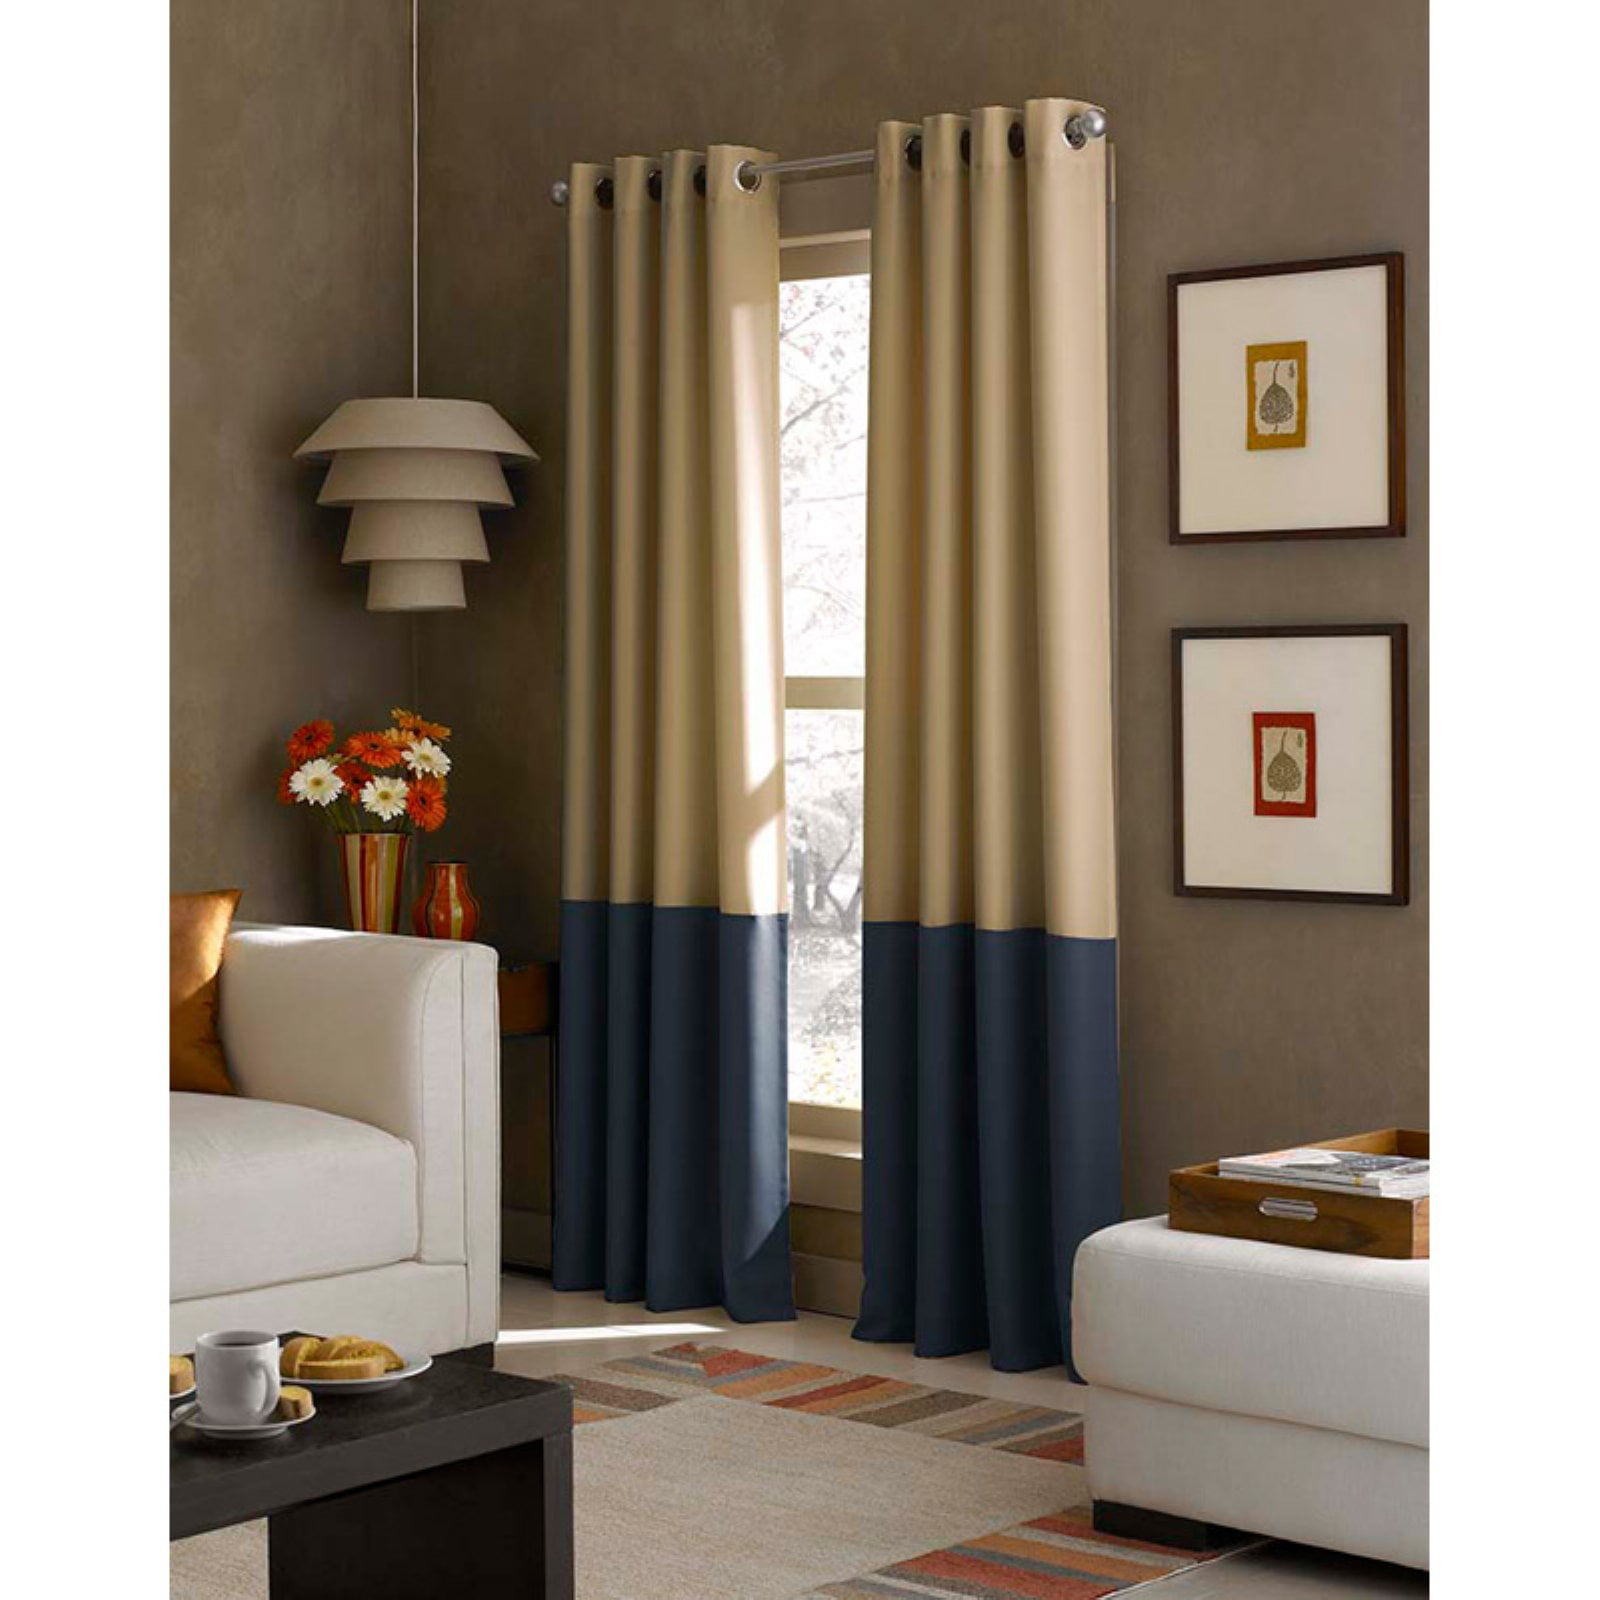 1PC New 2-TONE Window Curtain Grommet Panel Lined Blackout EID WHITE BROWN